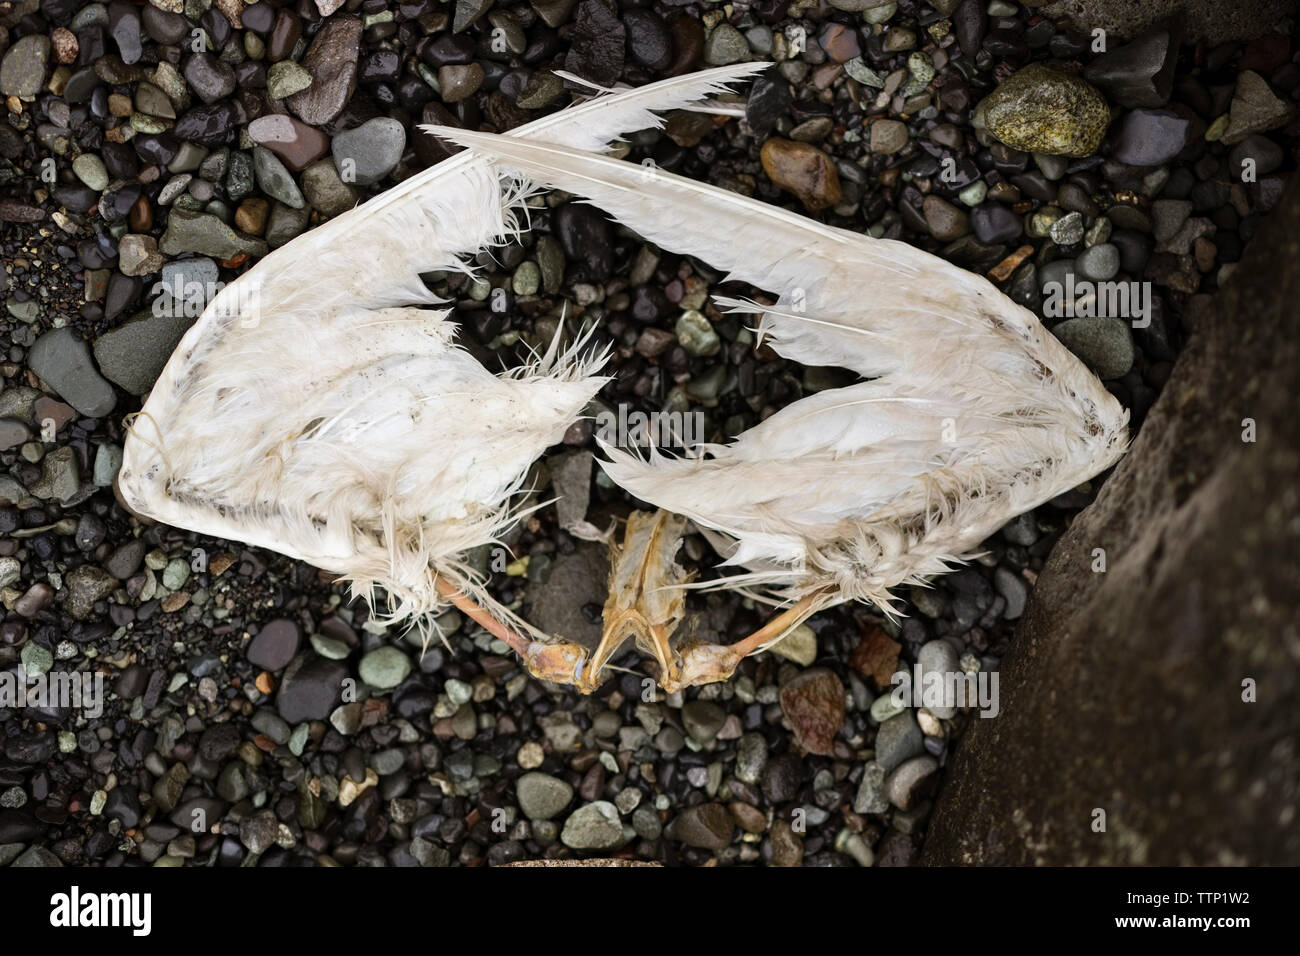 Overhead view of wings of dead bird - Stock Image